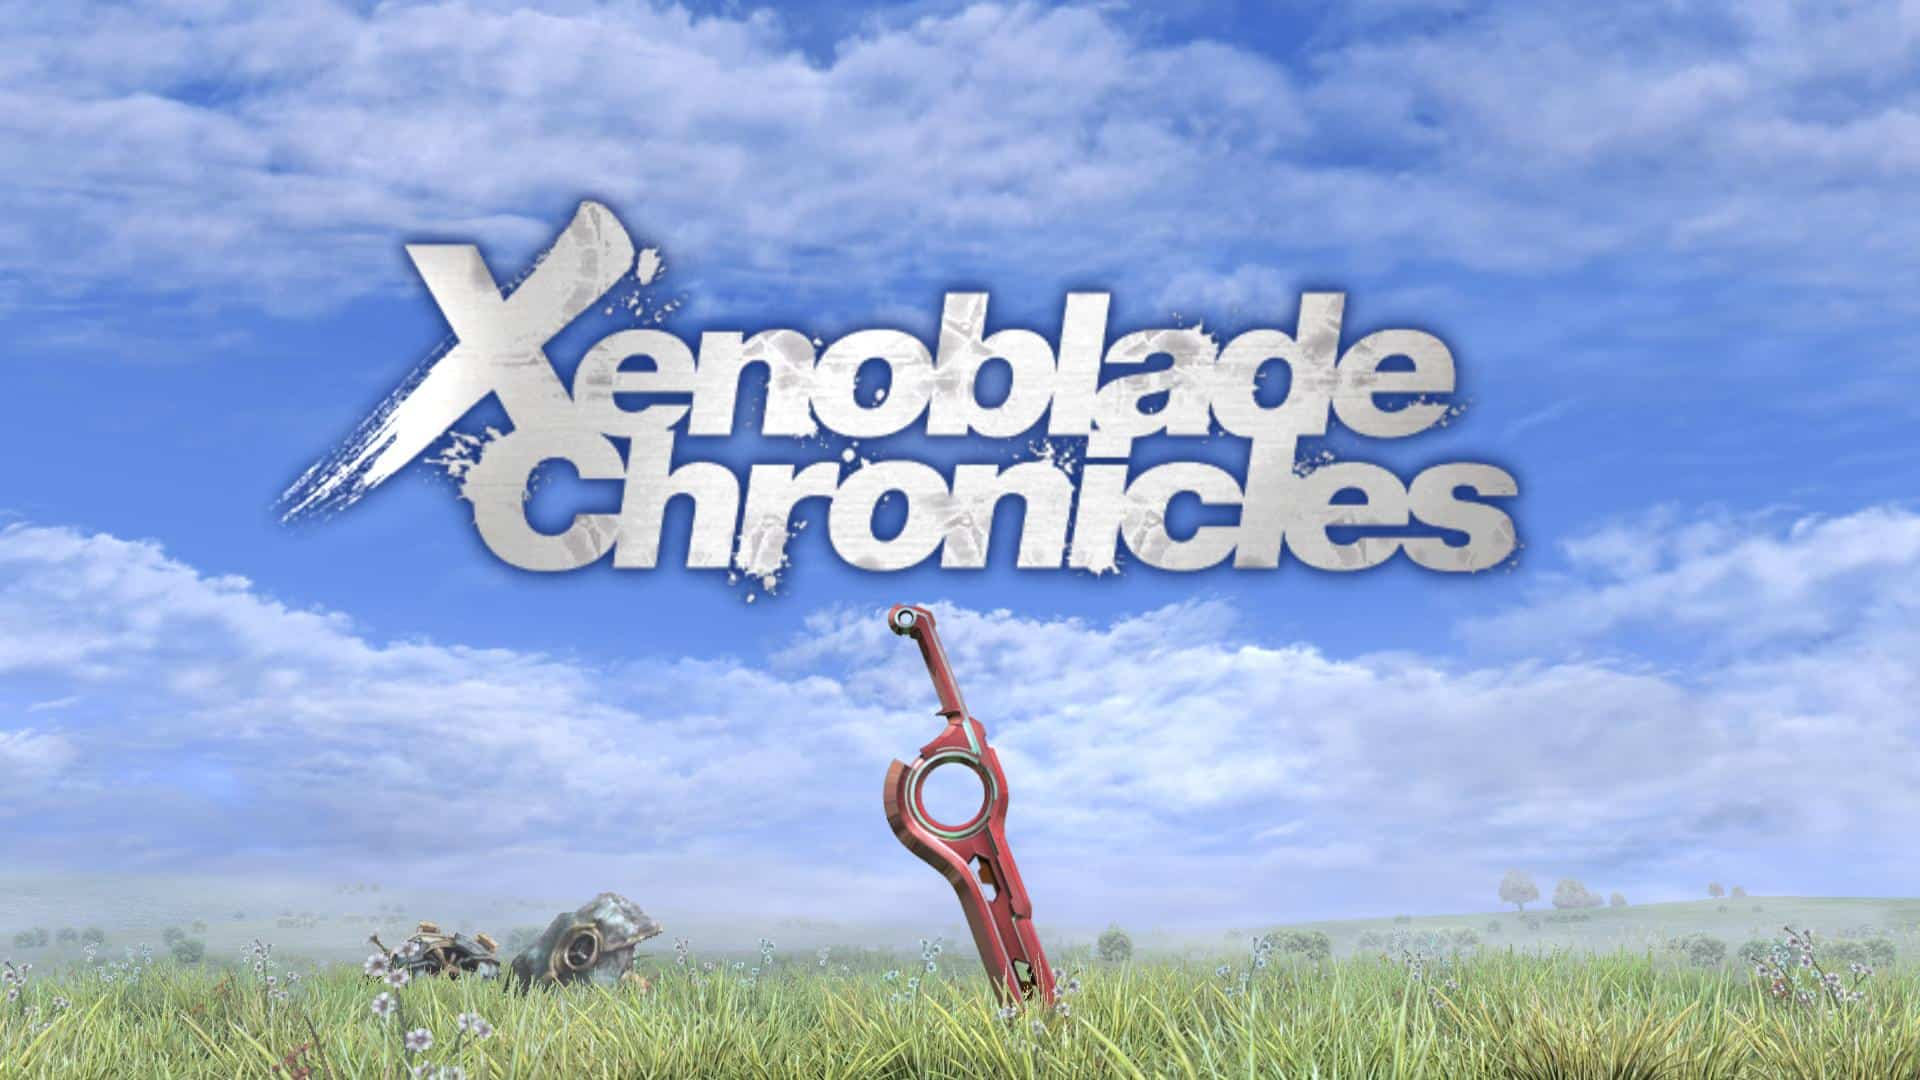 xenoblade-chronicles-wii-Title screen